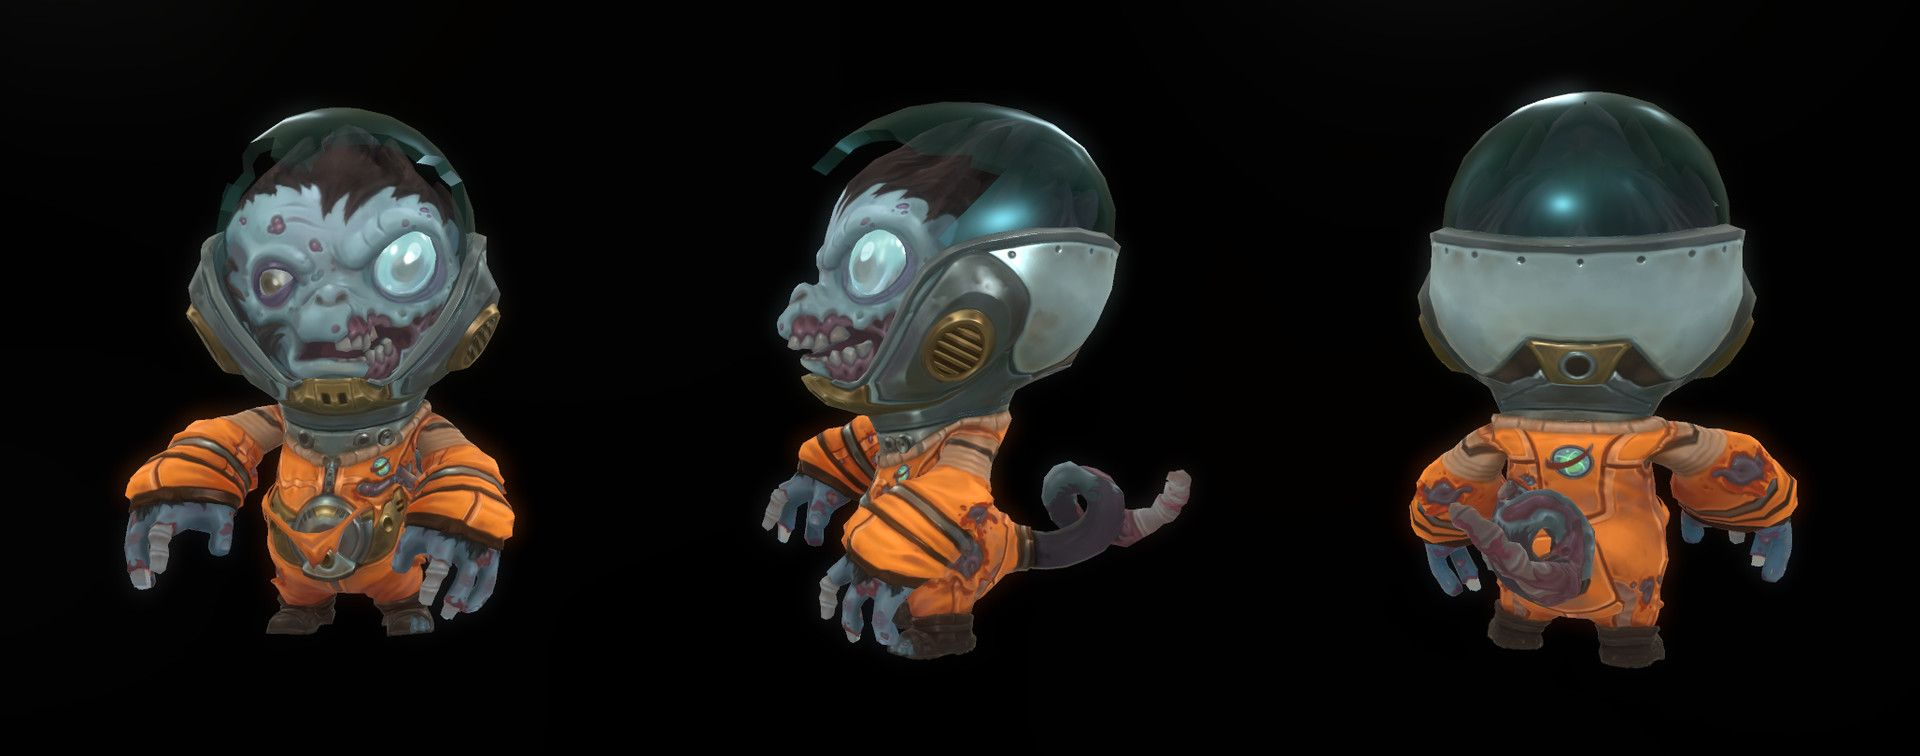 ArtStation - Baby Zombie Space Monkey, Tyler Hunter